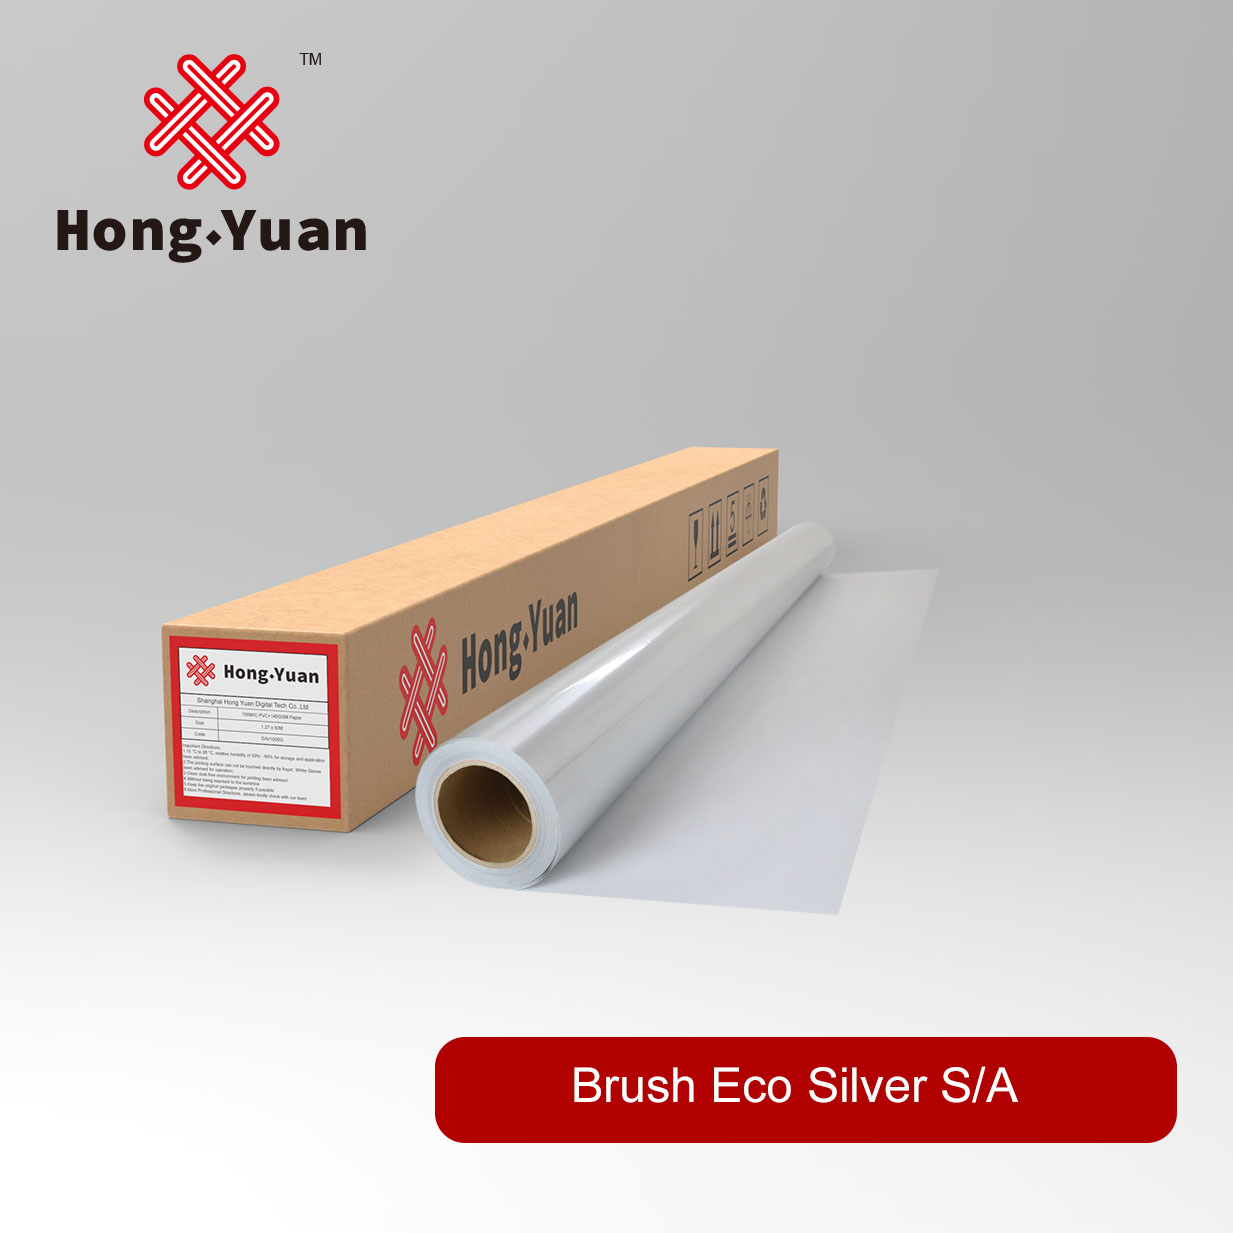 Brush Eco Silver Film S/A ESG100B